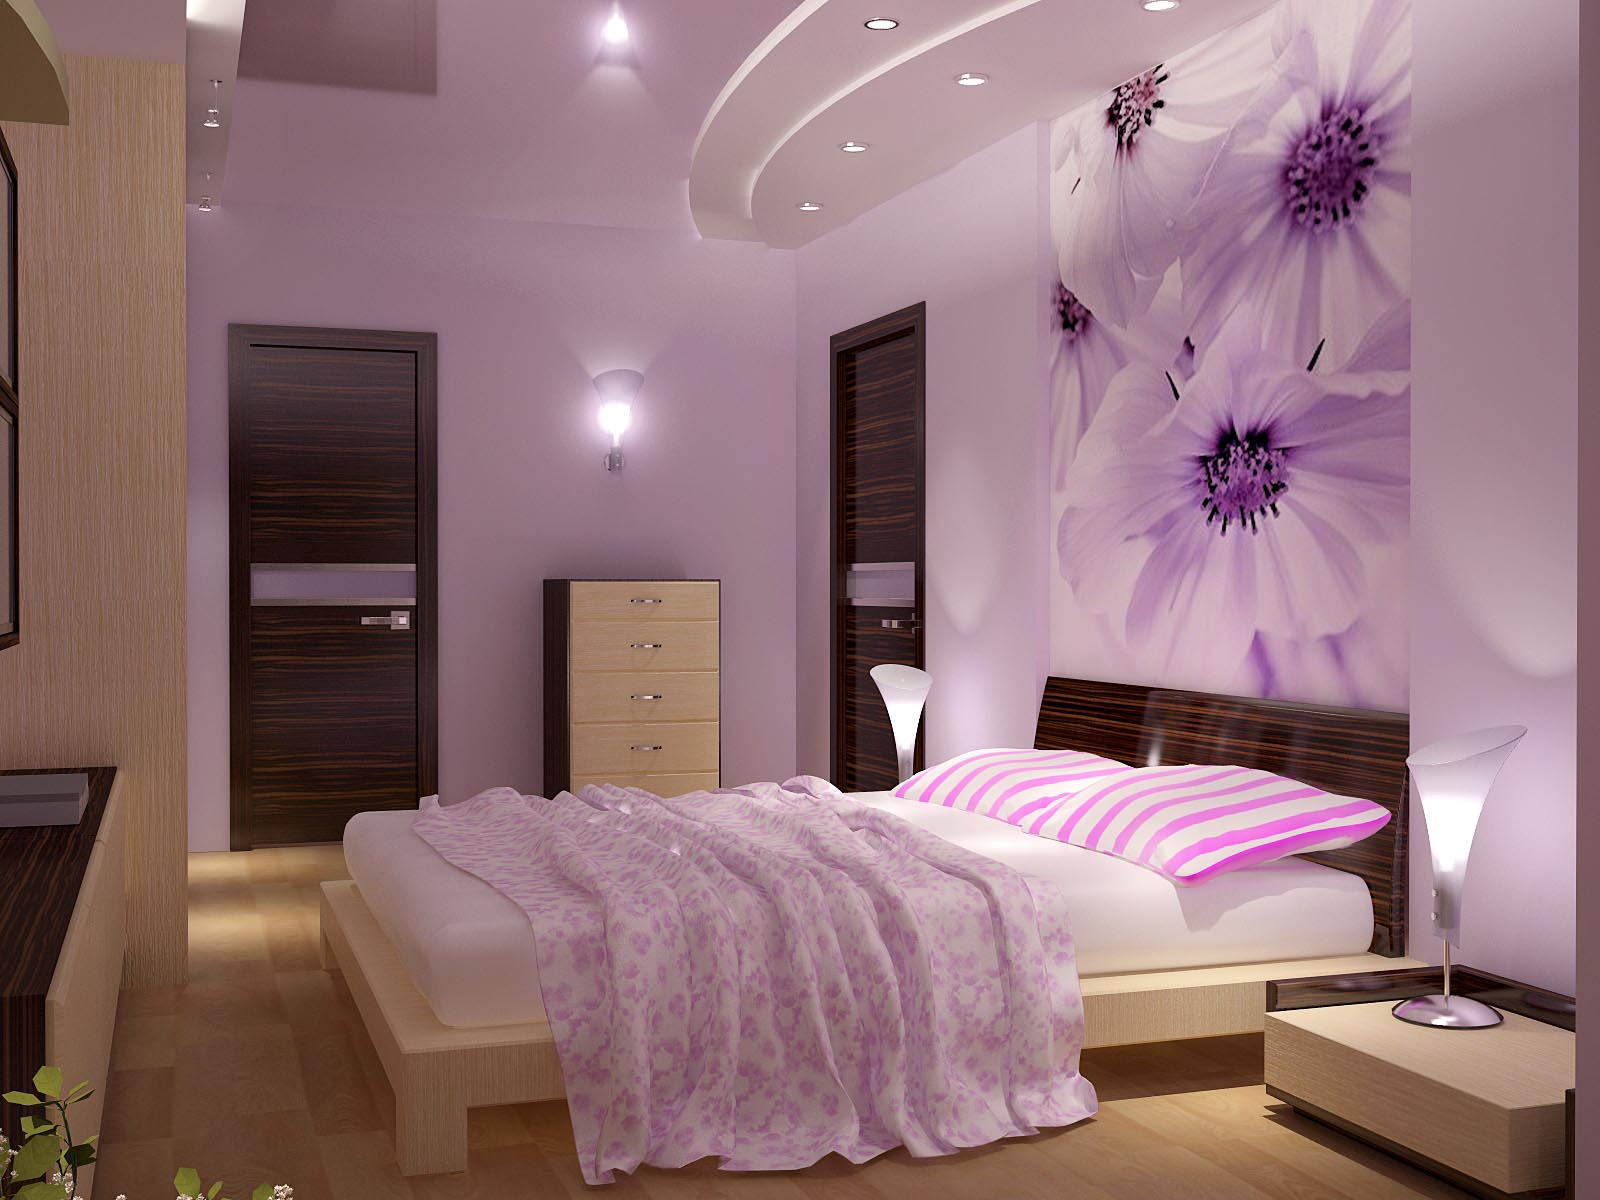 Spotlights help to create a glamorous bedroom style